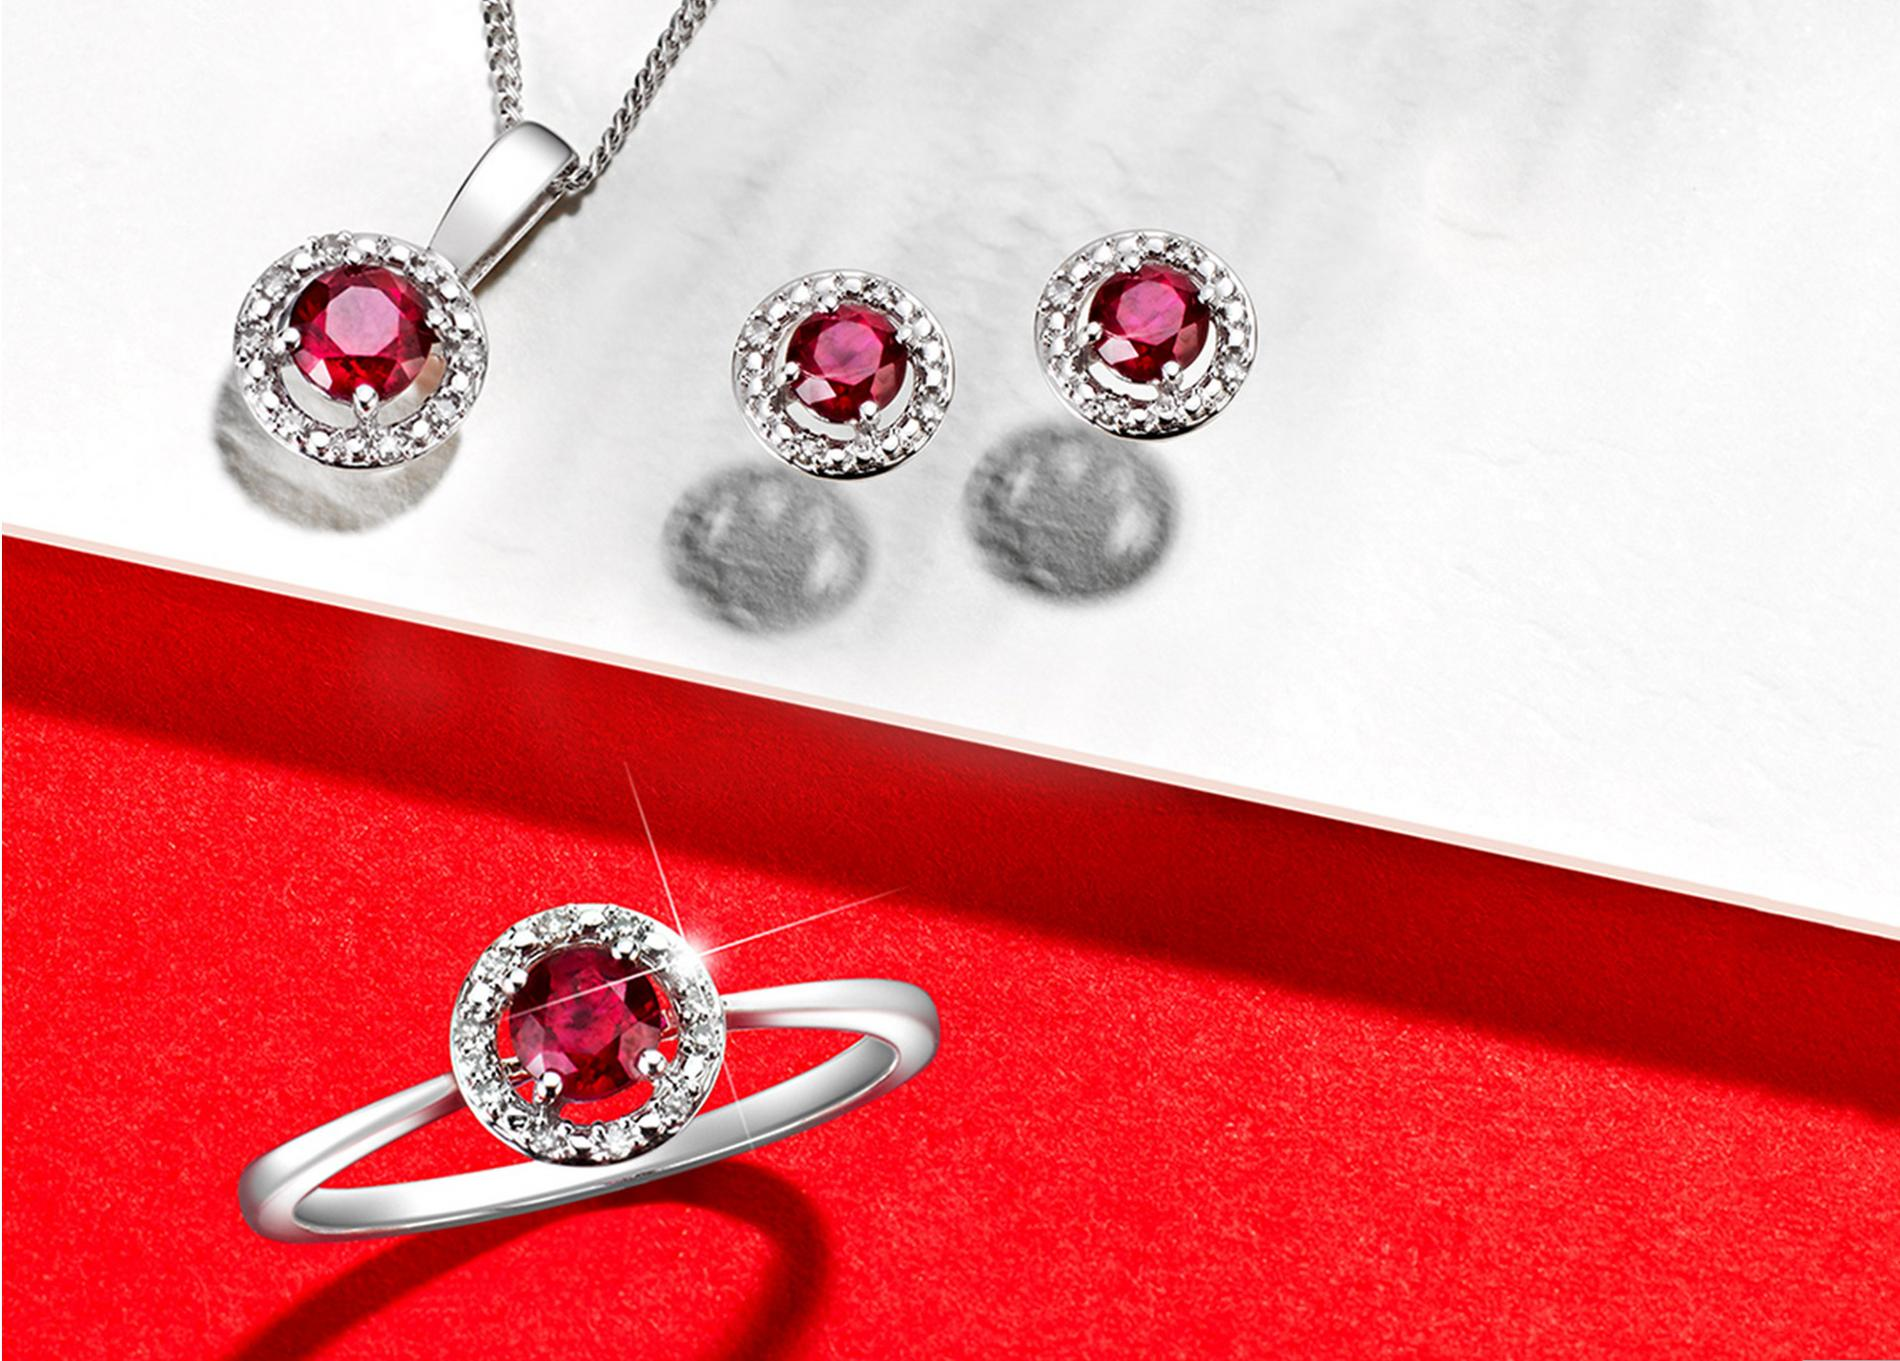 Ruby necklace, ring and earrings.